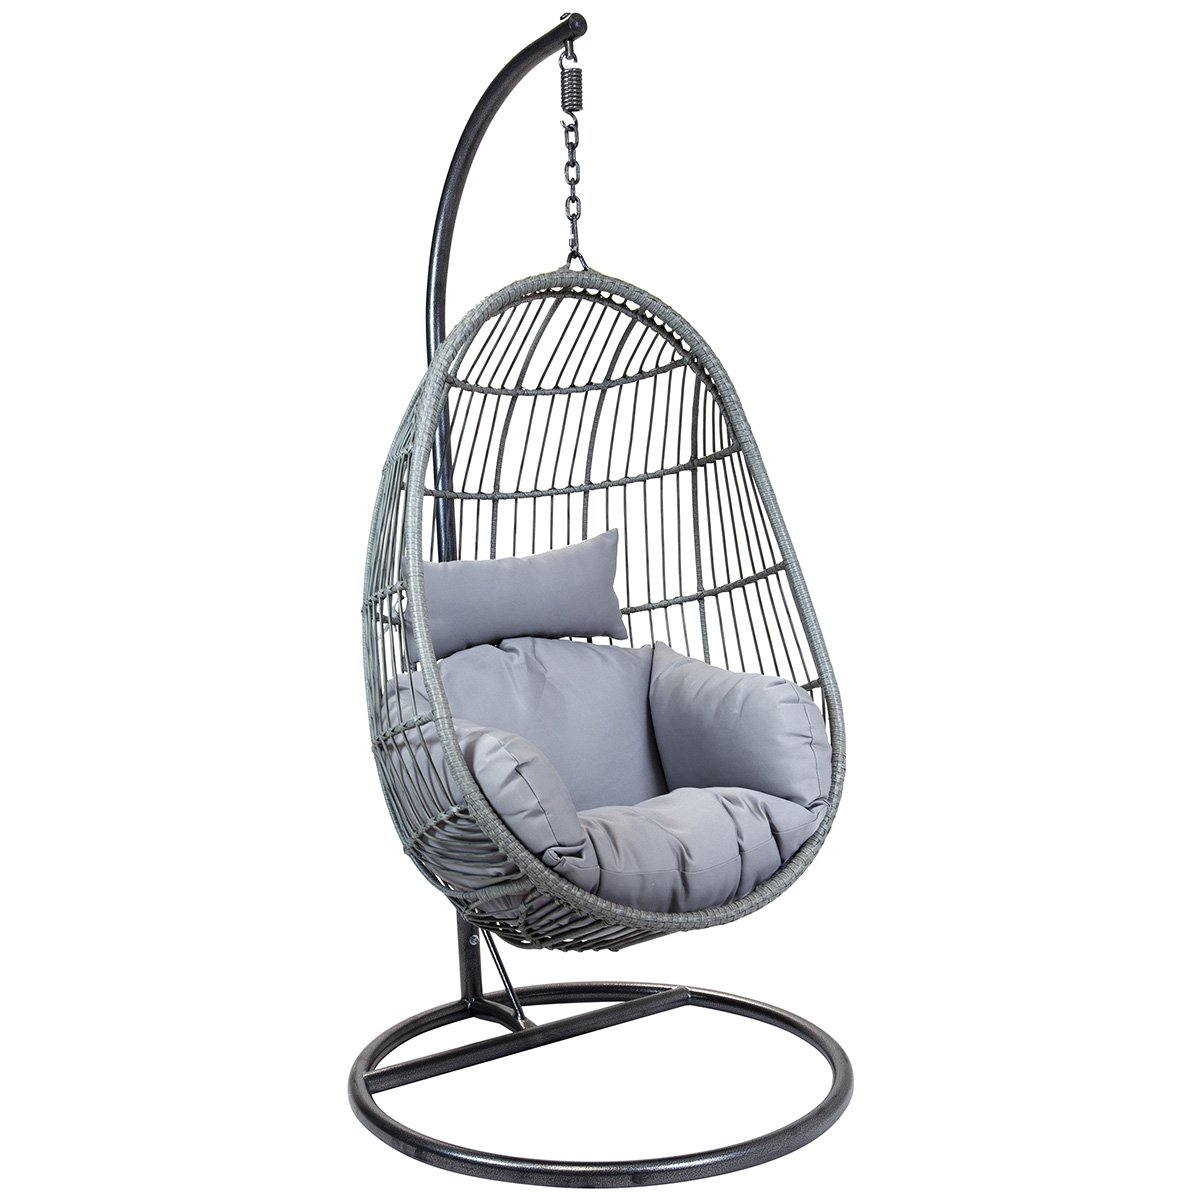 Hanging Patio Chair Hanging Egg Shaped Rattan Swing Chair With Cushion Grey